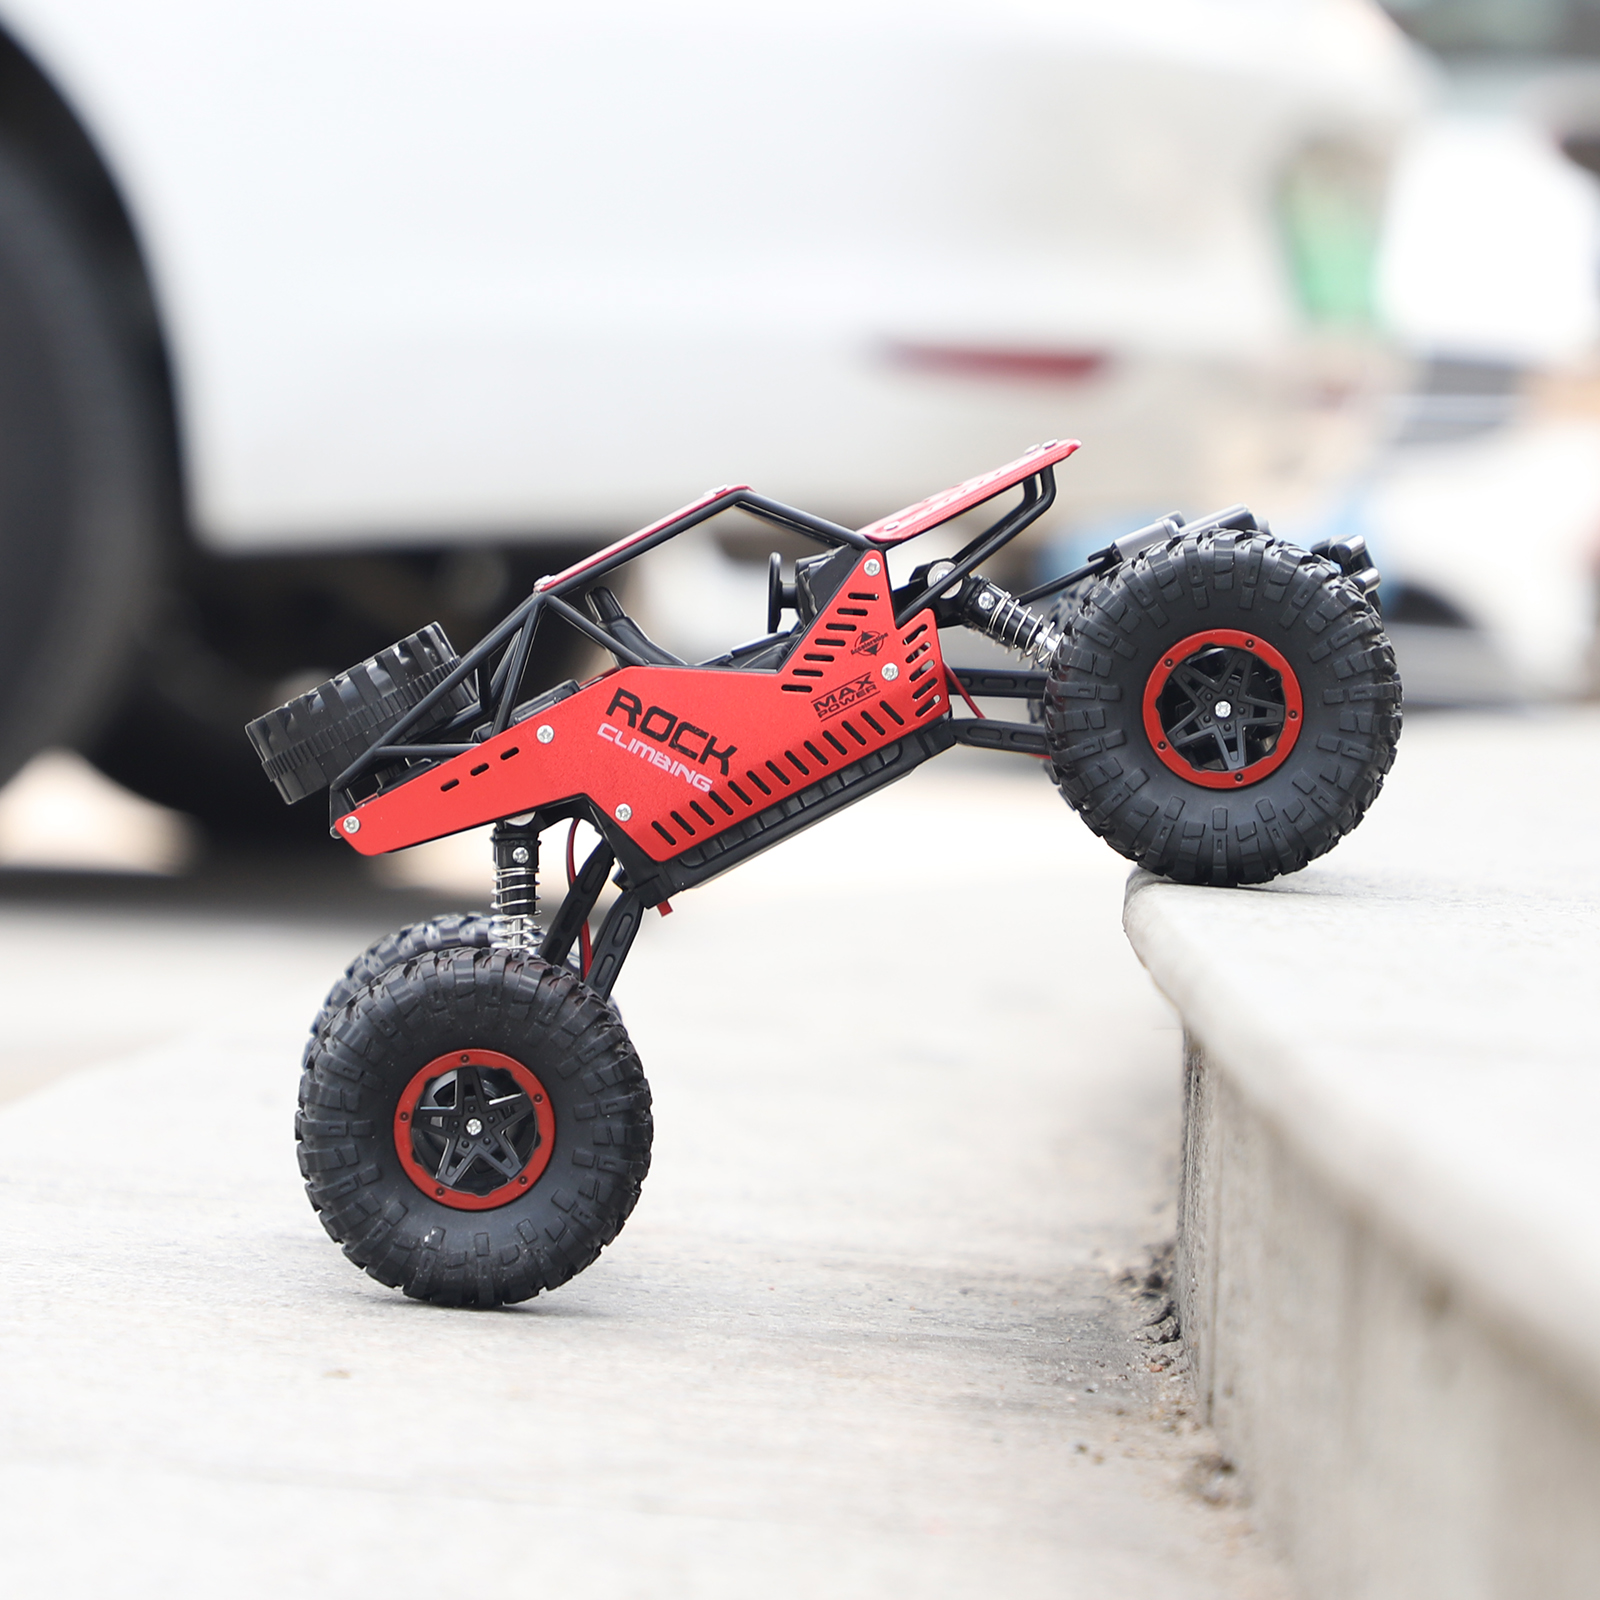 New Arrivel RC Car 1:18 4WD 2.4GHz LH-C008 Remote Control Crawler Mini Off Road Car Speed Rock Rover Toys For Kids Xmas GiftNew Arrivel RC Car 1:18 4WD 2.4GHz LH-C008 Remote Control Crawler Mini Off Road Car Speed Rock Rover Toys For Kids Xmas Gift